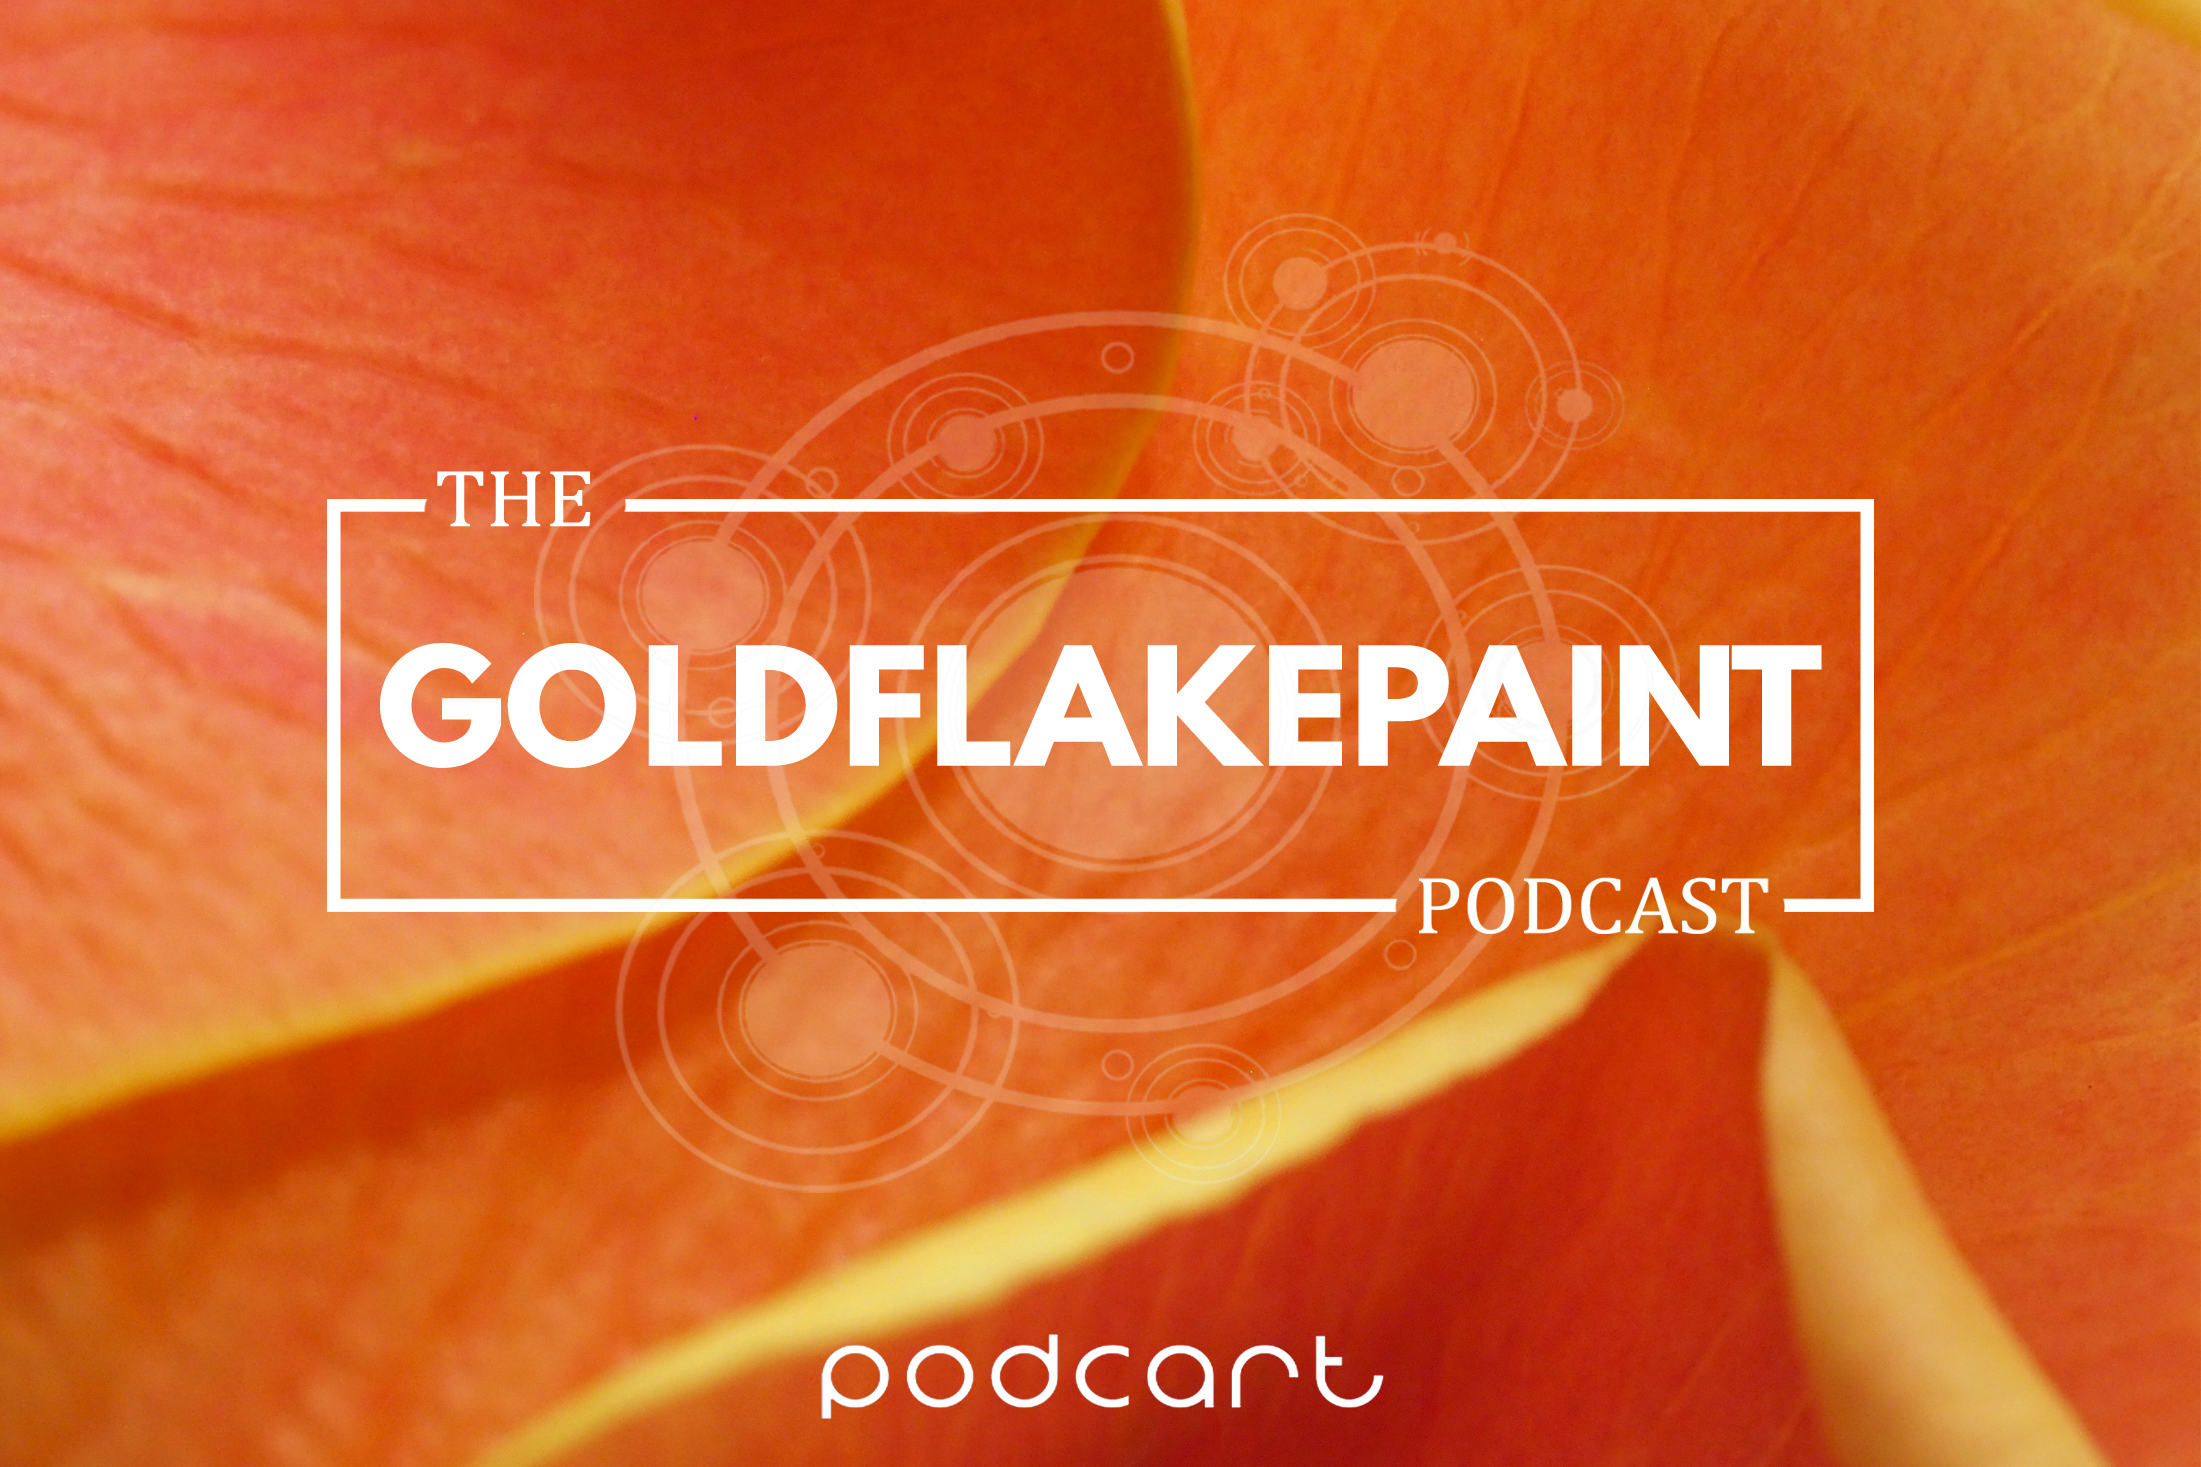 The GoldFlakePaint Podcast